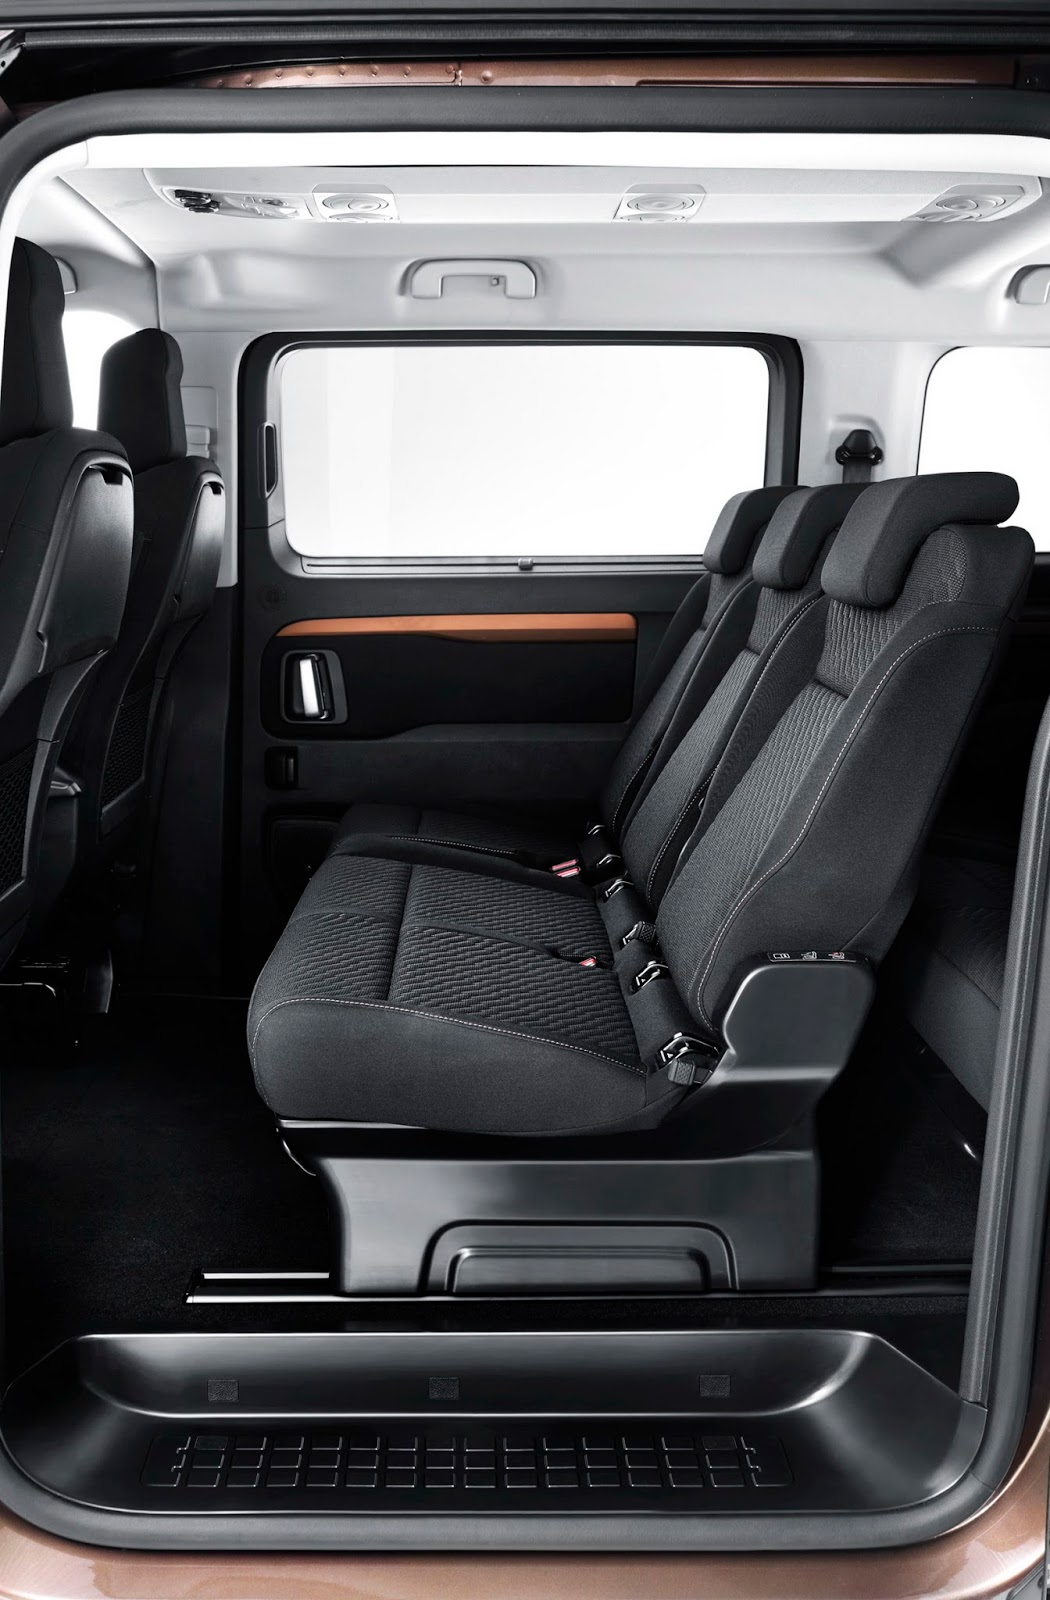 Cars With 3 Rows Of Seats >> New Toyota Proace Verso MPV Detailed, Offers Seating For Up To Nine [w/Video] | Carscoops